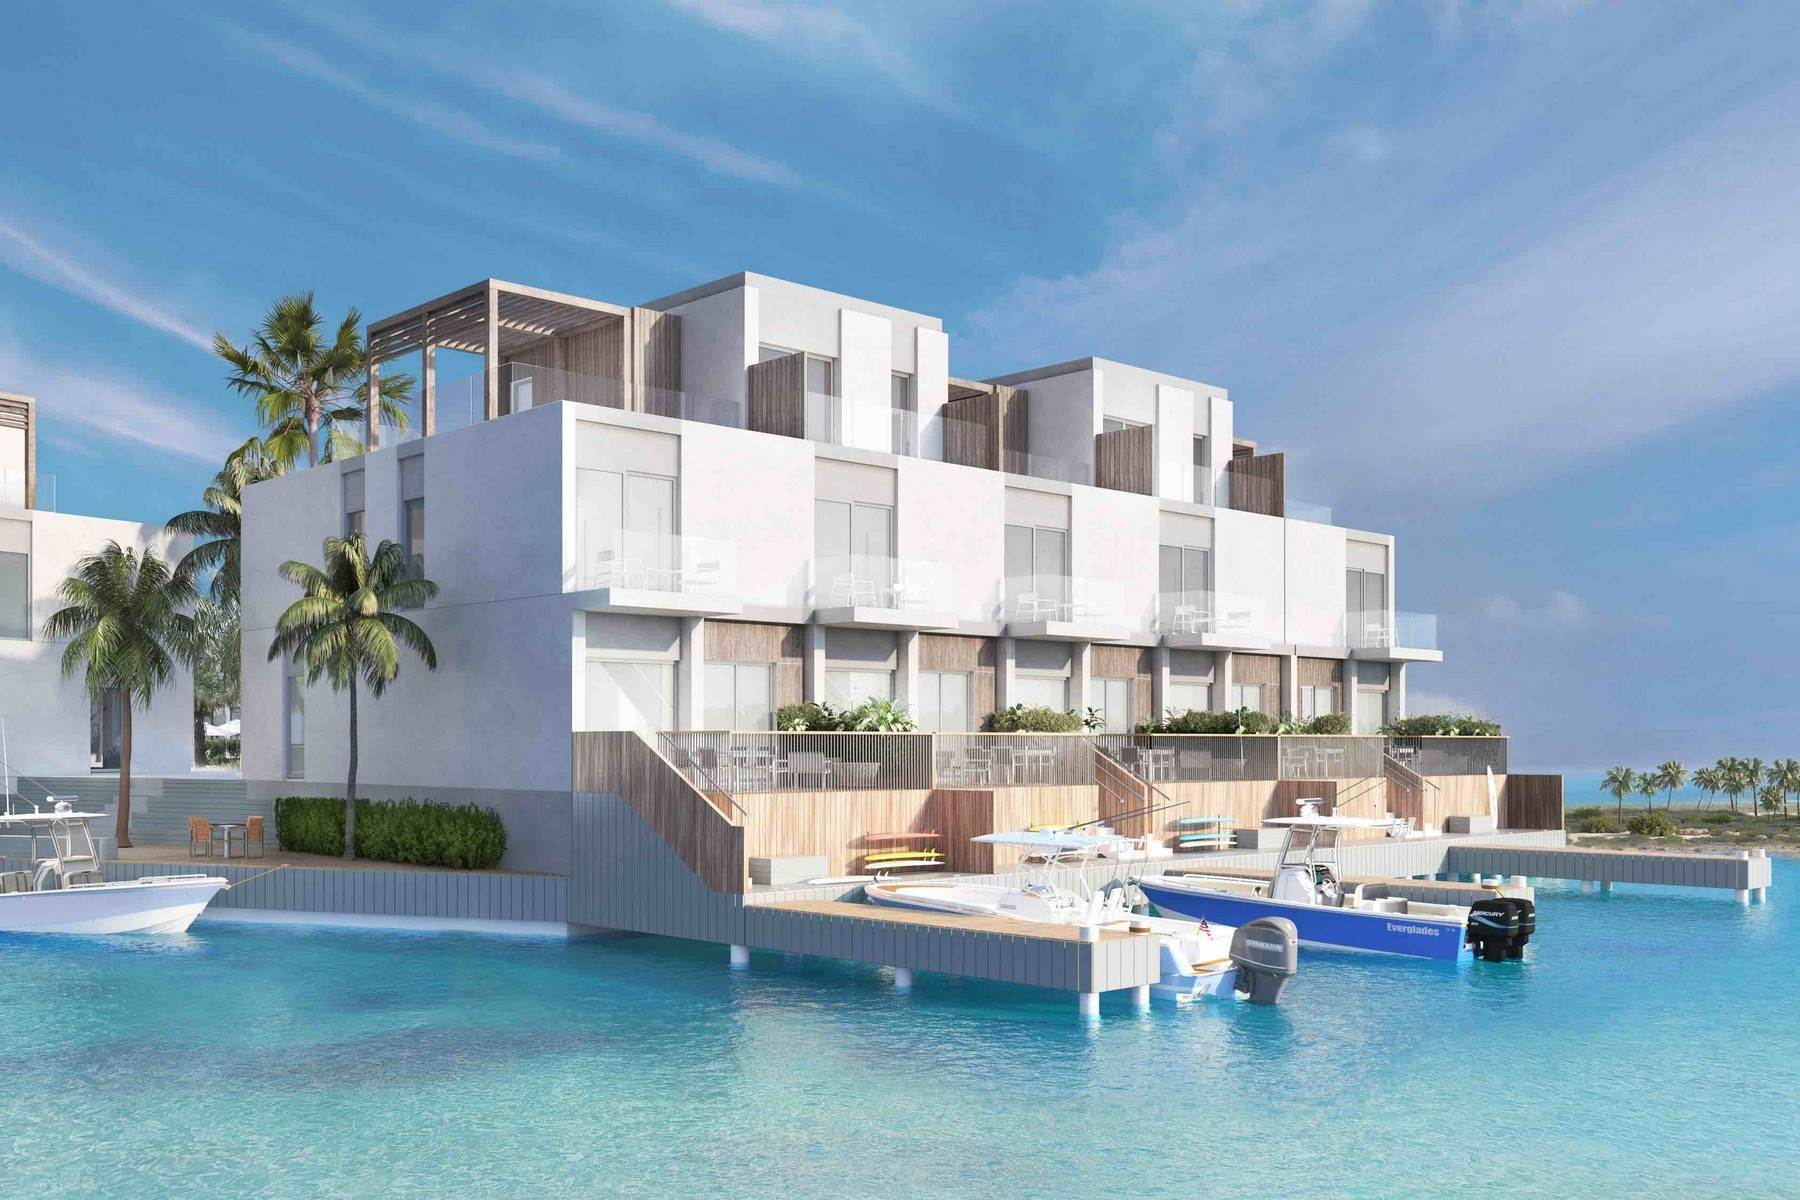 4. Condominiums for Sale at SOUTH BANK - BOATHOUSES - TWO BEDROOM PLUS ROOFTOP TERRACE - E1 South Bank, Long Bay, Providenciales Turks And Caicos Islands